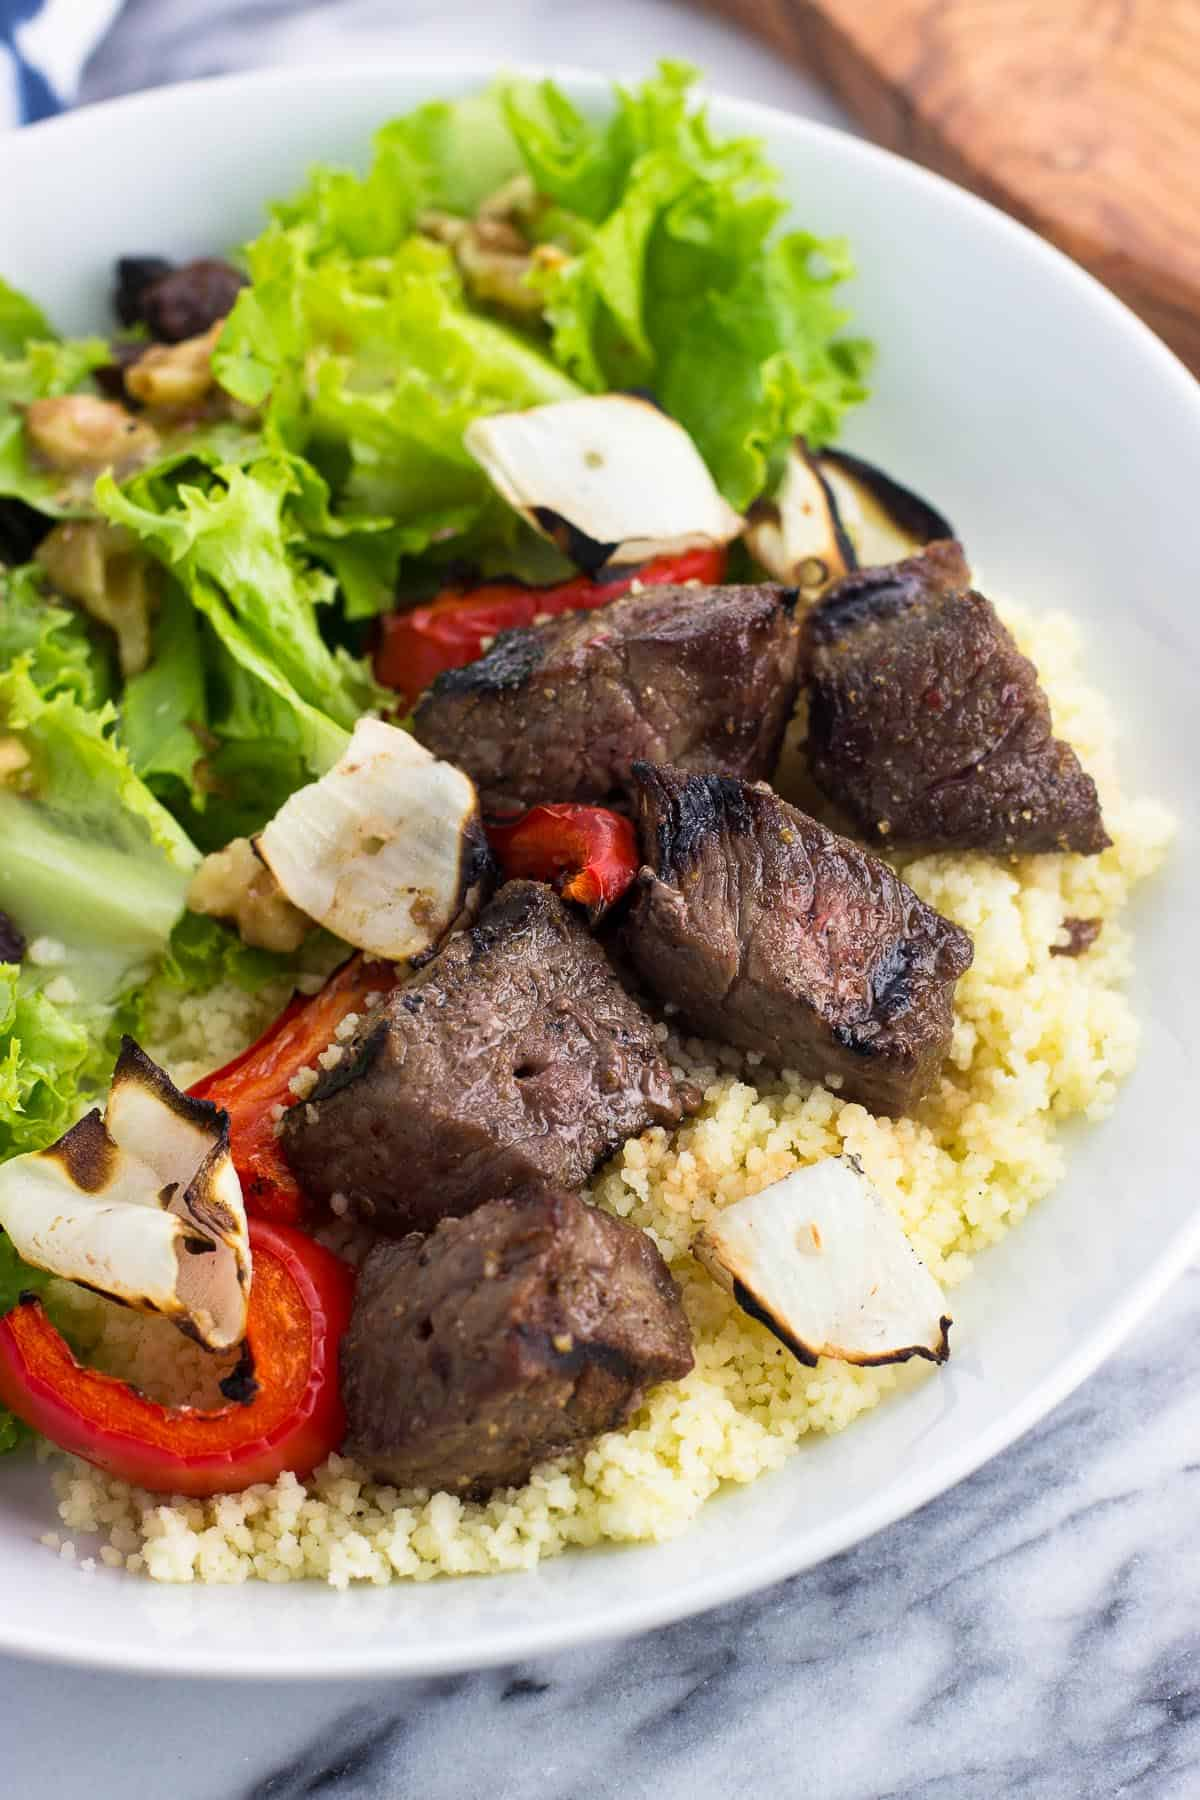 Grilled steak cubes served over couscous with grilled vegetables and a side salad